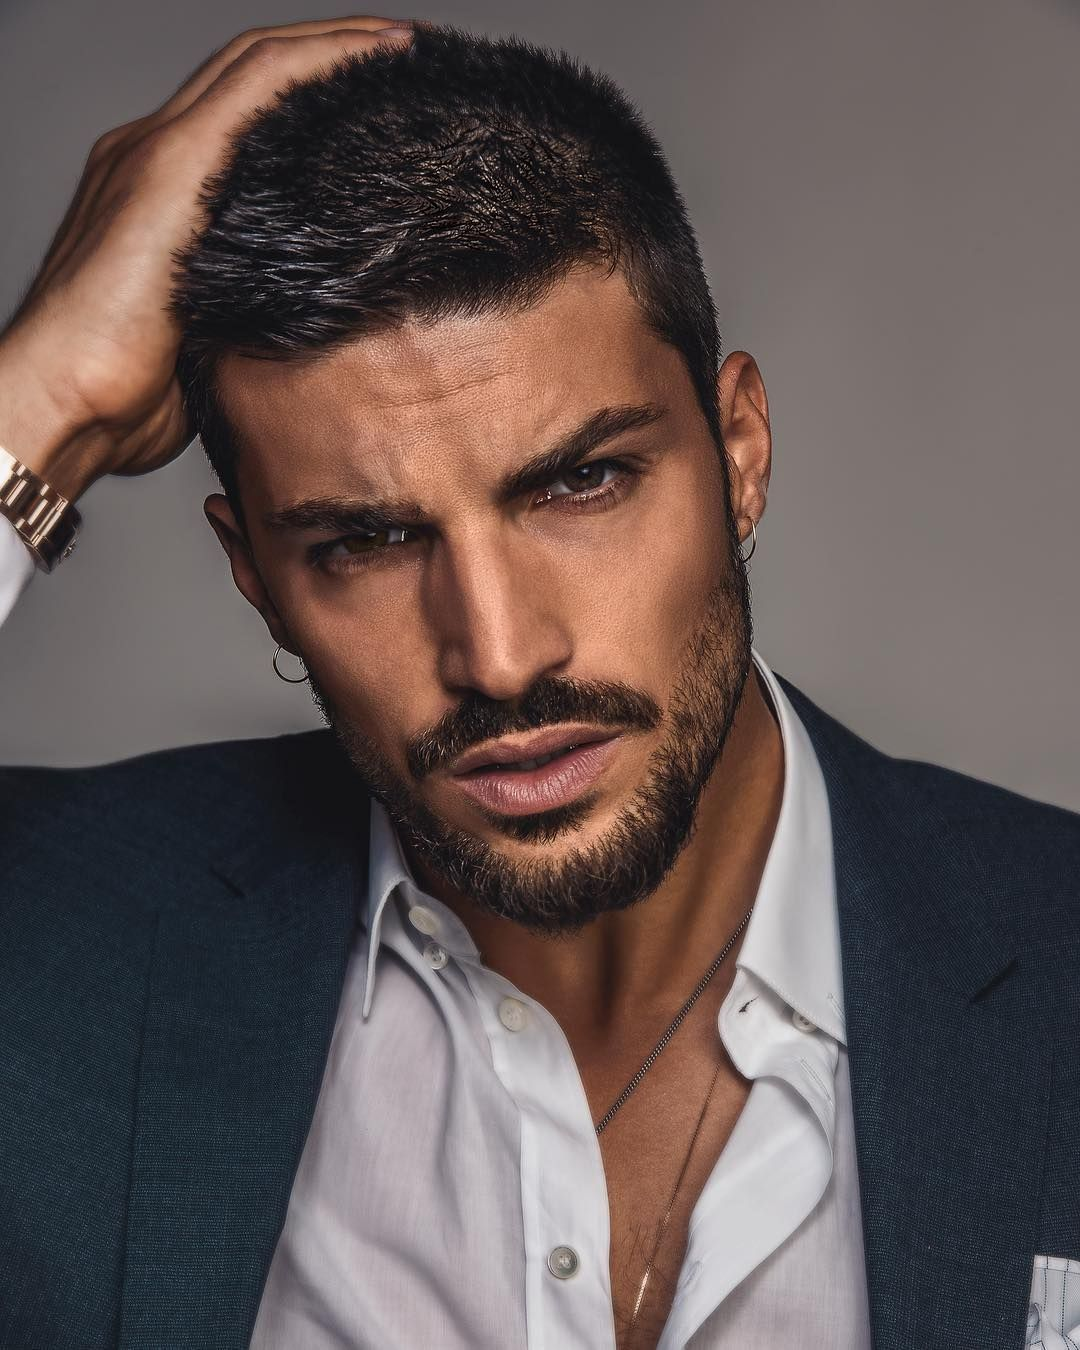 Mariano Di Vaio Beard Styles For Men Groom Hair Styles Cool Hairstyles For Men